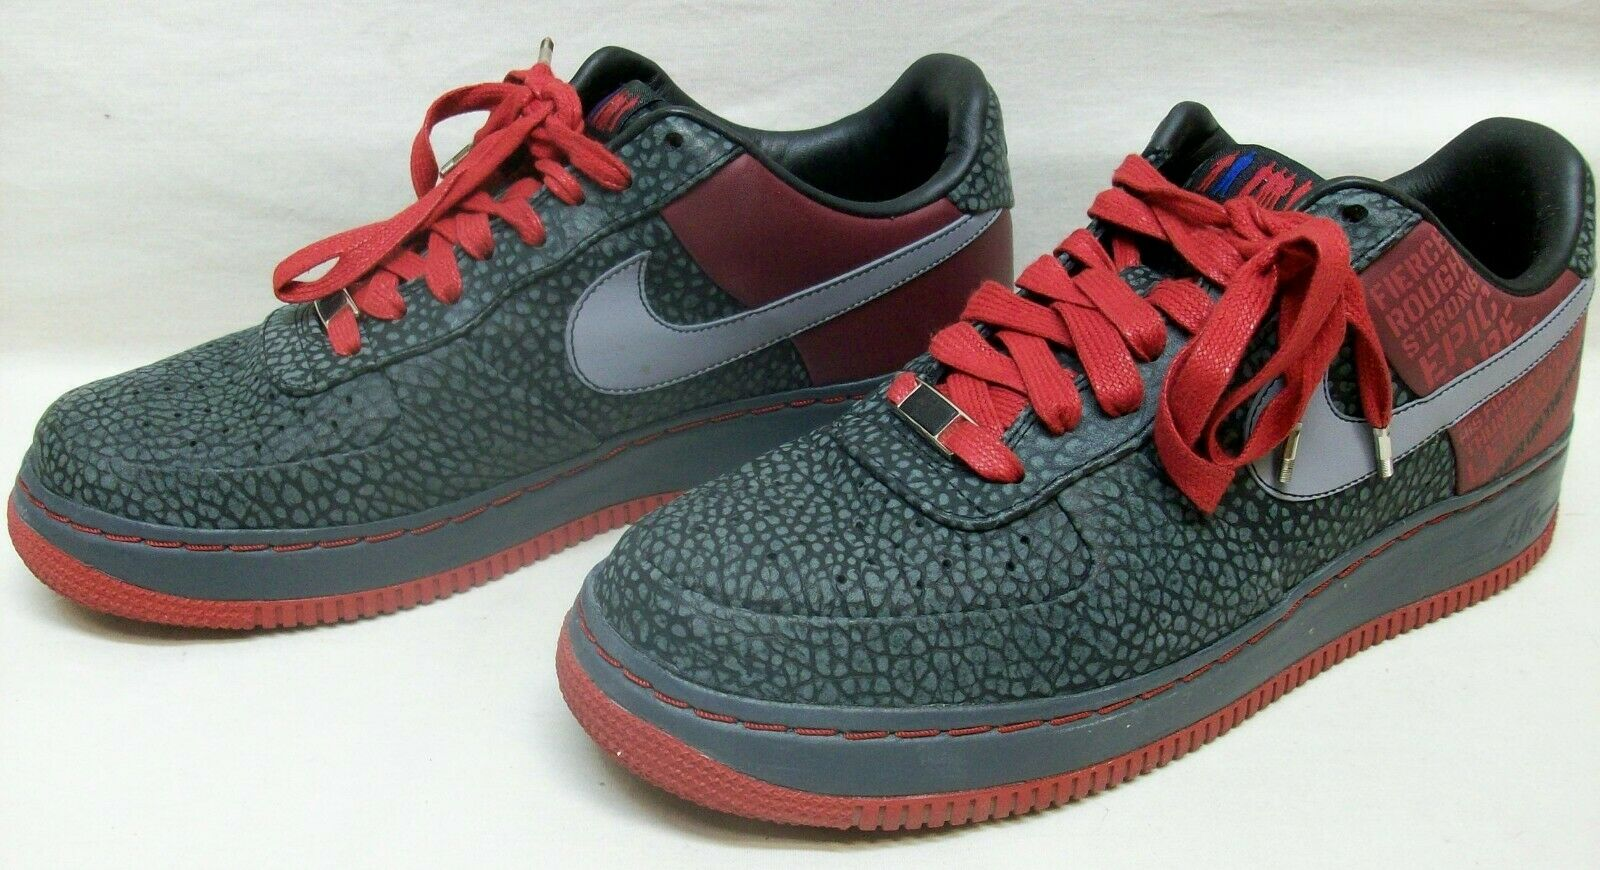 Nike Air Force 1 Supreme '07 (Malone) Size 10 Sneakers  Original Six  EXL Cond